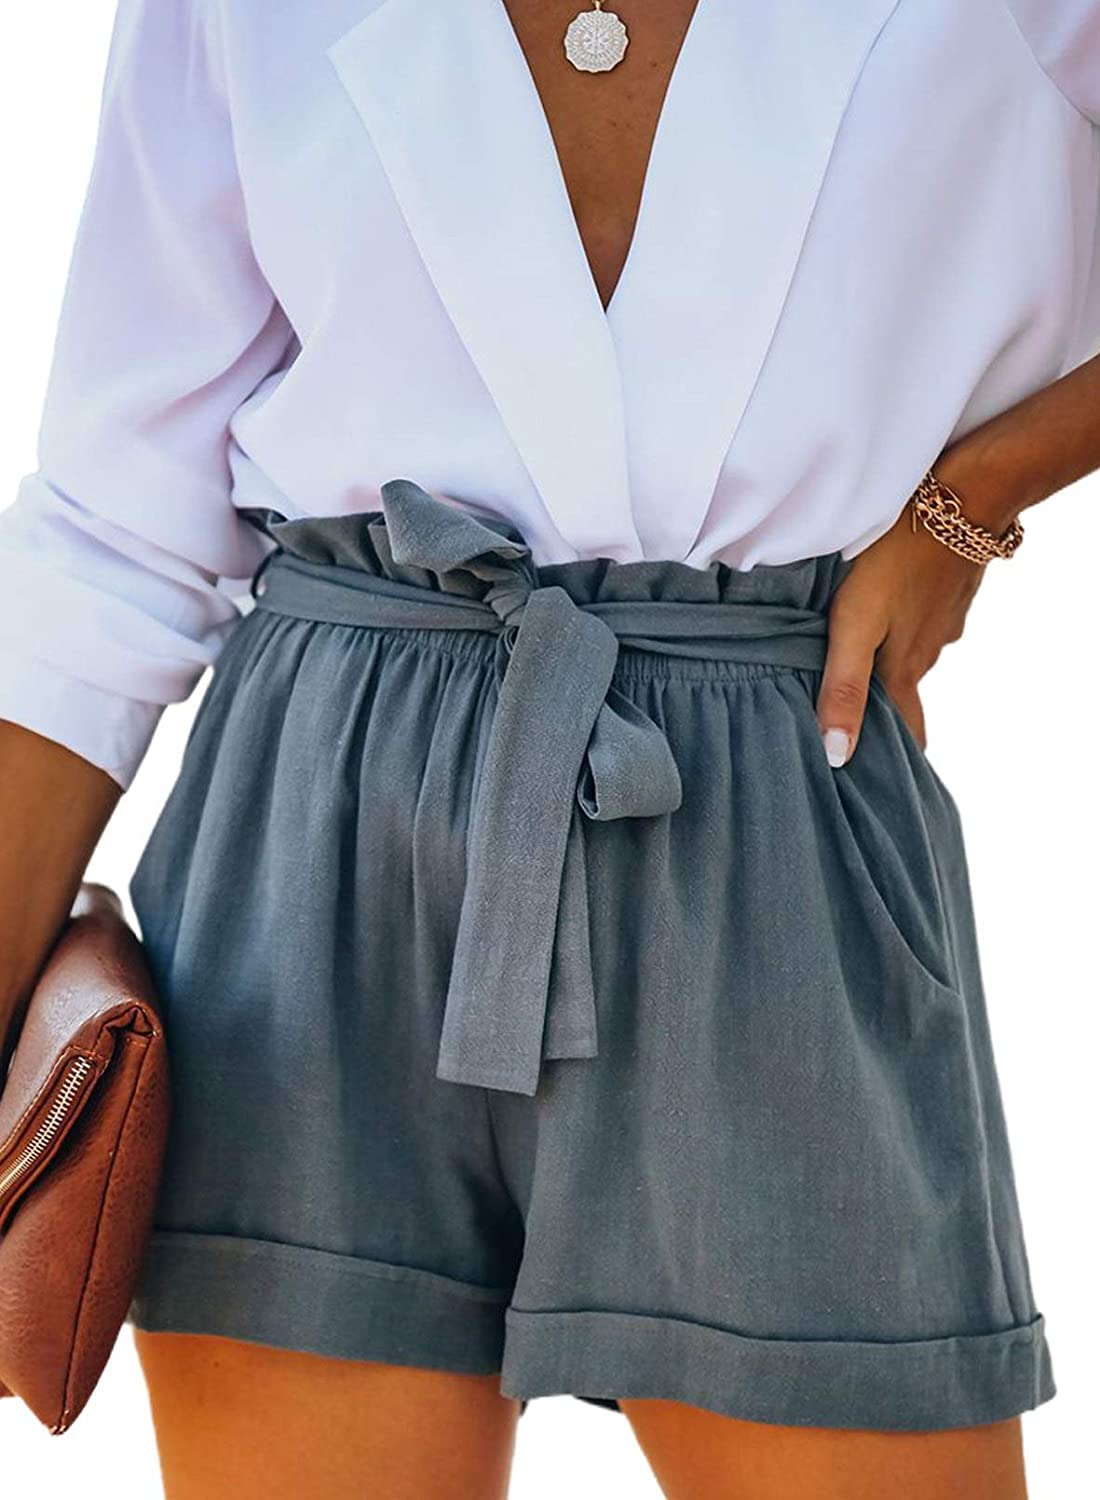 Bdcoco Womens Casual Drawstring Elastic Waist Solid Cotton Linen Shorts with Pockets